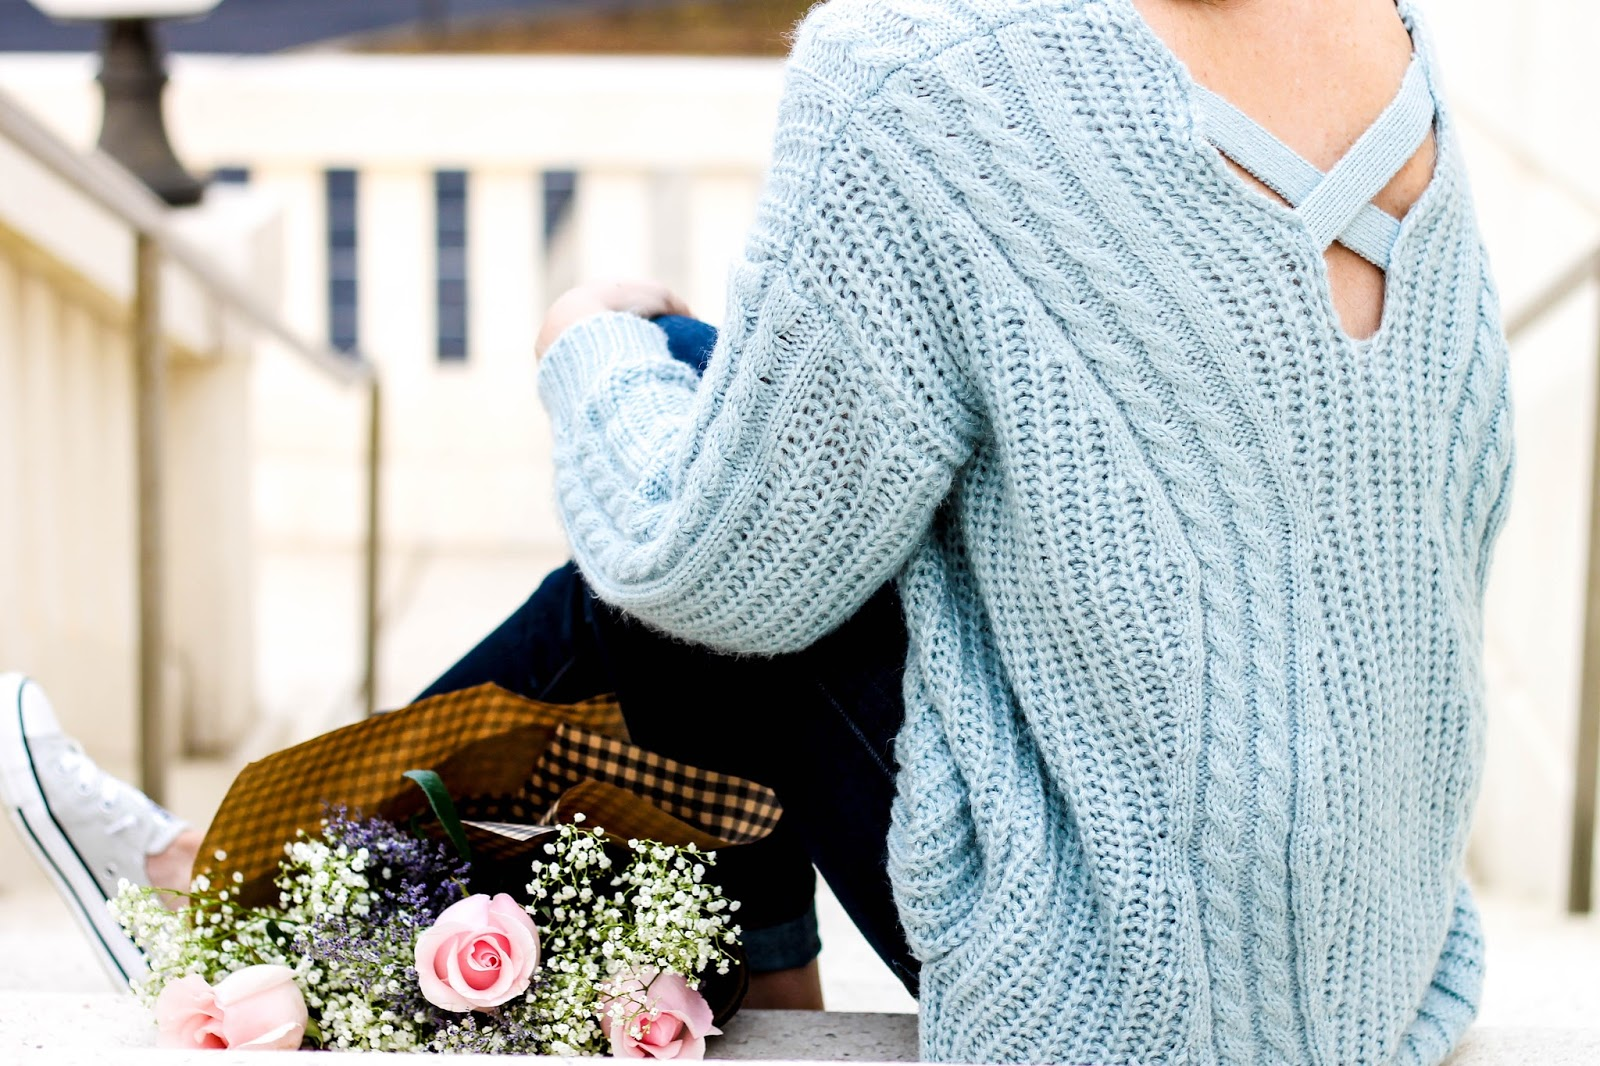 Sunny Afternoon V-neck Sweater Chicwish, chunky knit carolina blue sweater, winter outfit idea, casual winter outfits, fashion blogger NC, chicwish sweater, oversized knit sweater in light blue, north carolina blog, pretty in the pines, dark skinny jeans, converse shoreline sneakers